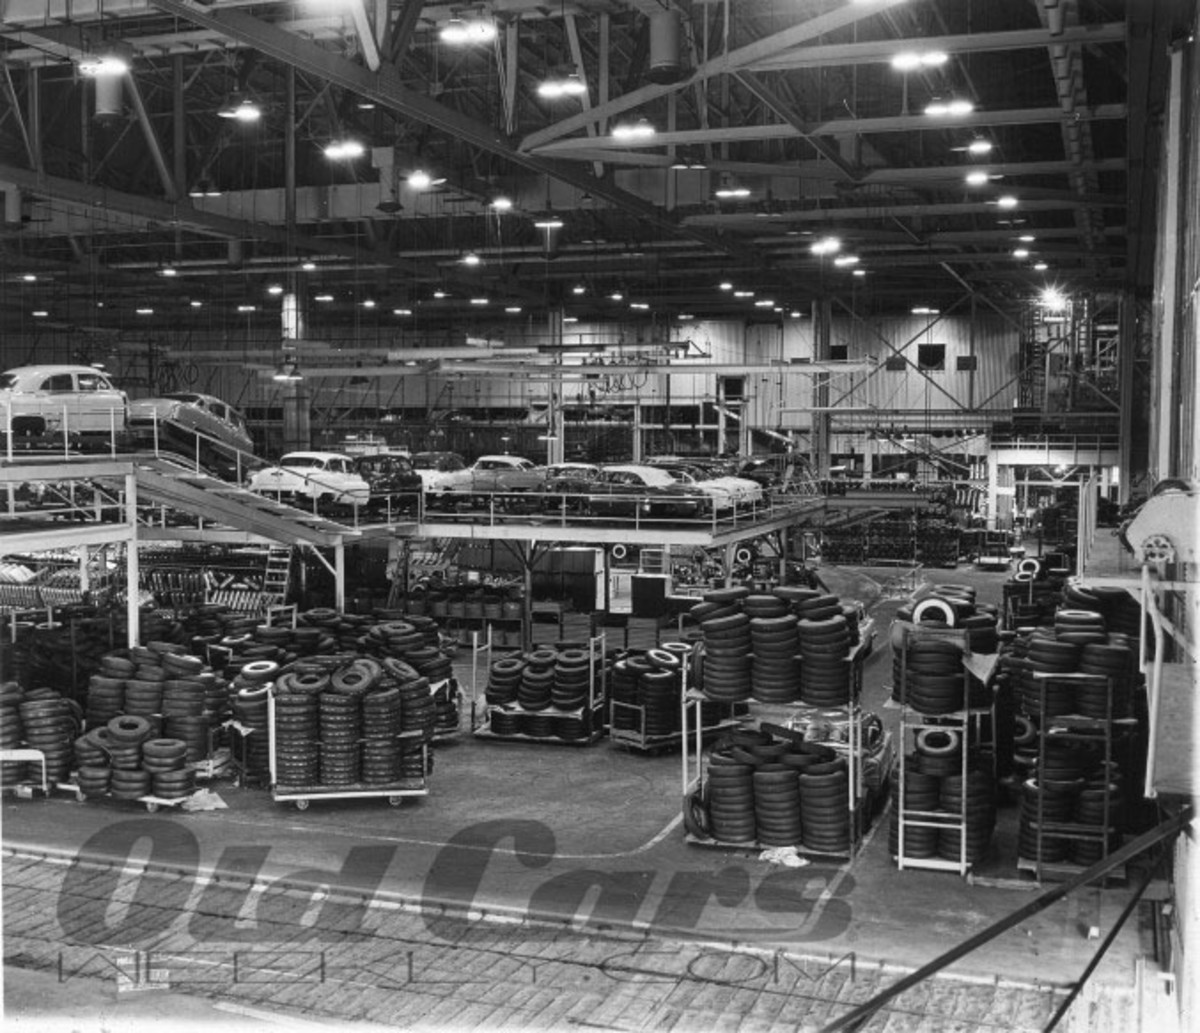 Trimmed bodies in a mix of 1952 B-O-P models travel down the line at General Motors' Fairfax, Kan., plant, waiting to be mated with chassis. The blackwalls in the foreground appear to greatly outnumber the whitewall tires.